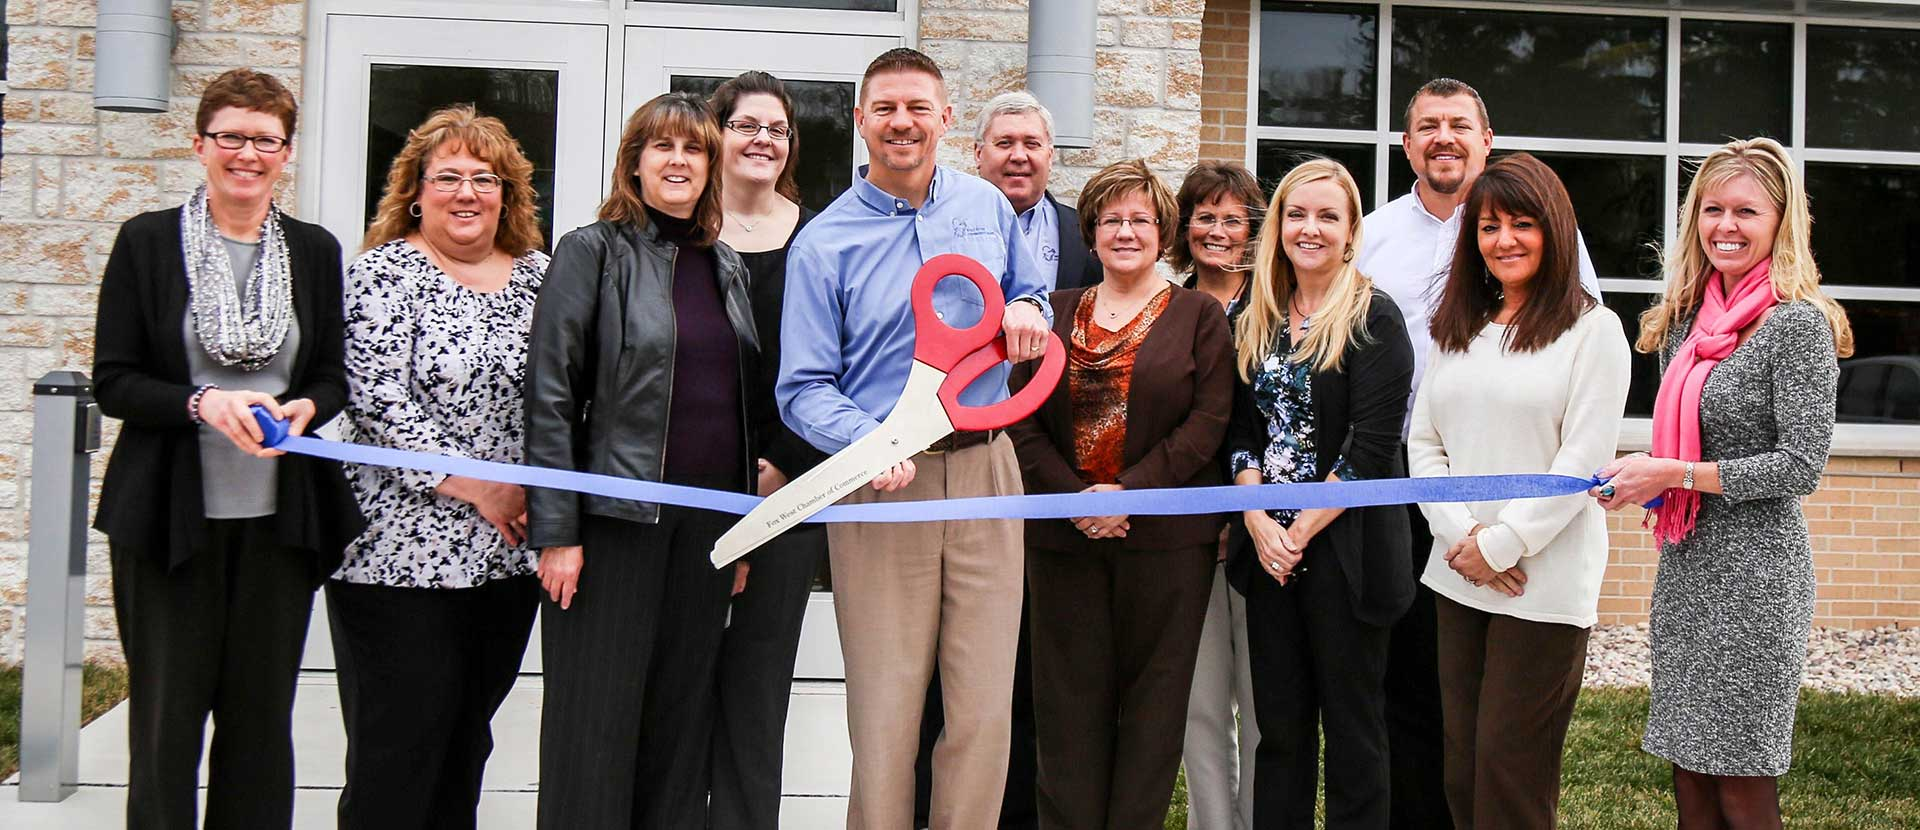 Ribbon cutting ceremony in Greenville, WI.